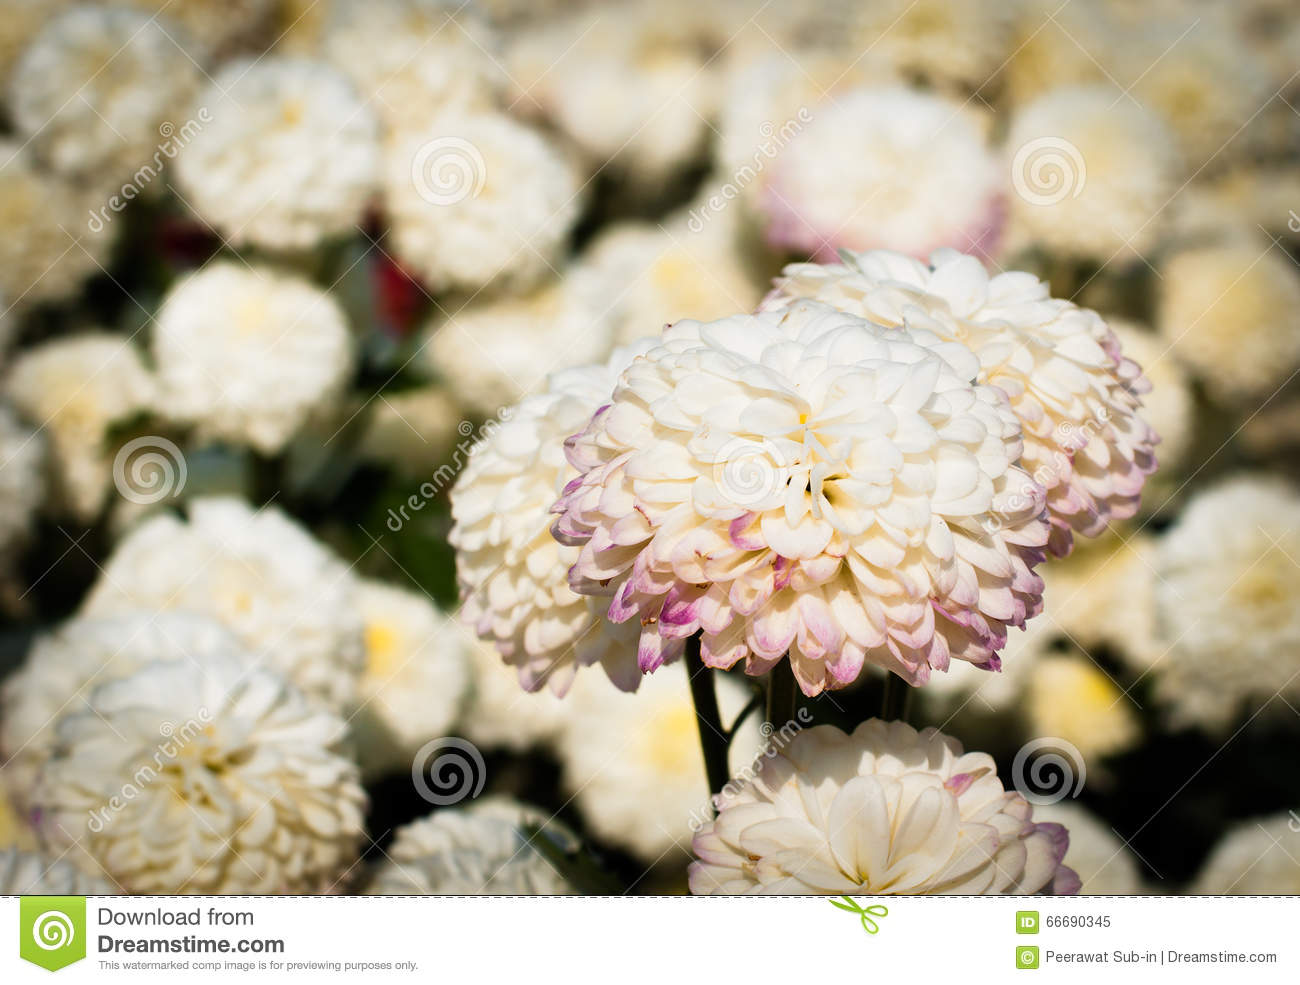 White chrysanthemum flower with old dark yellow color filter